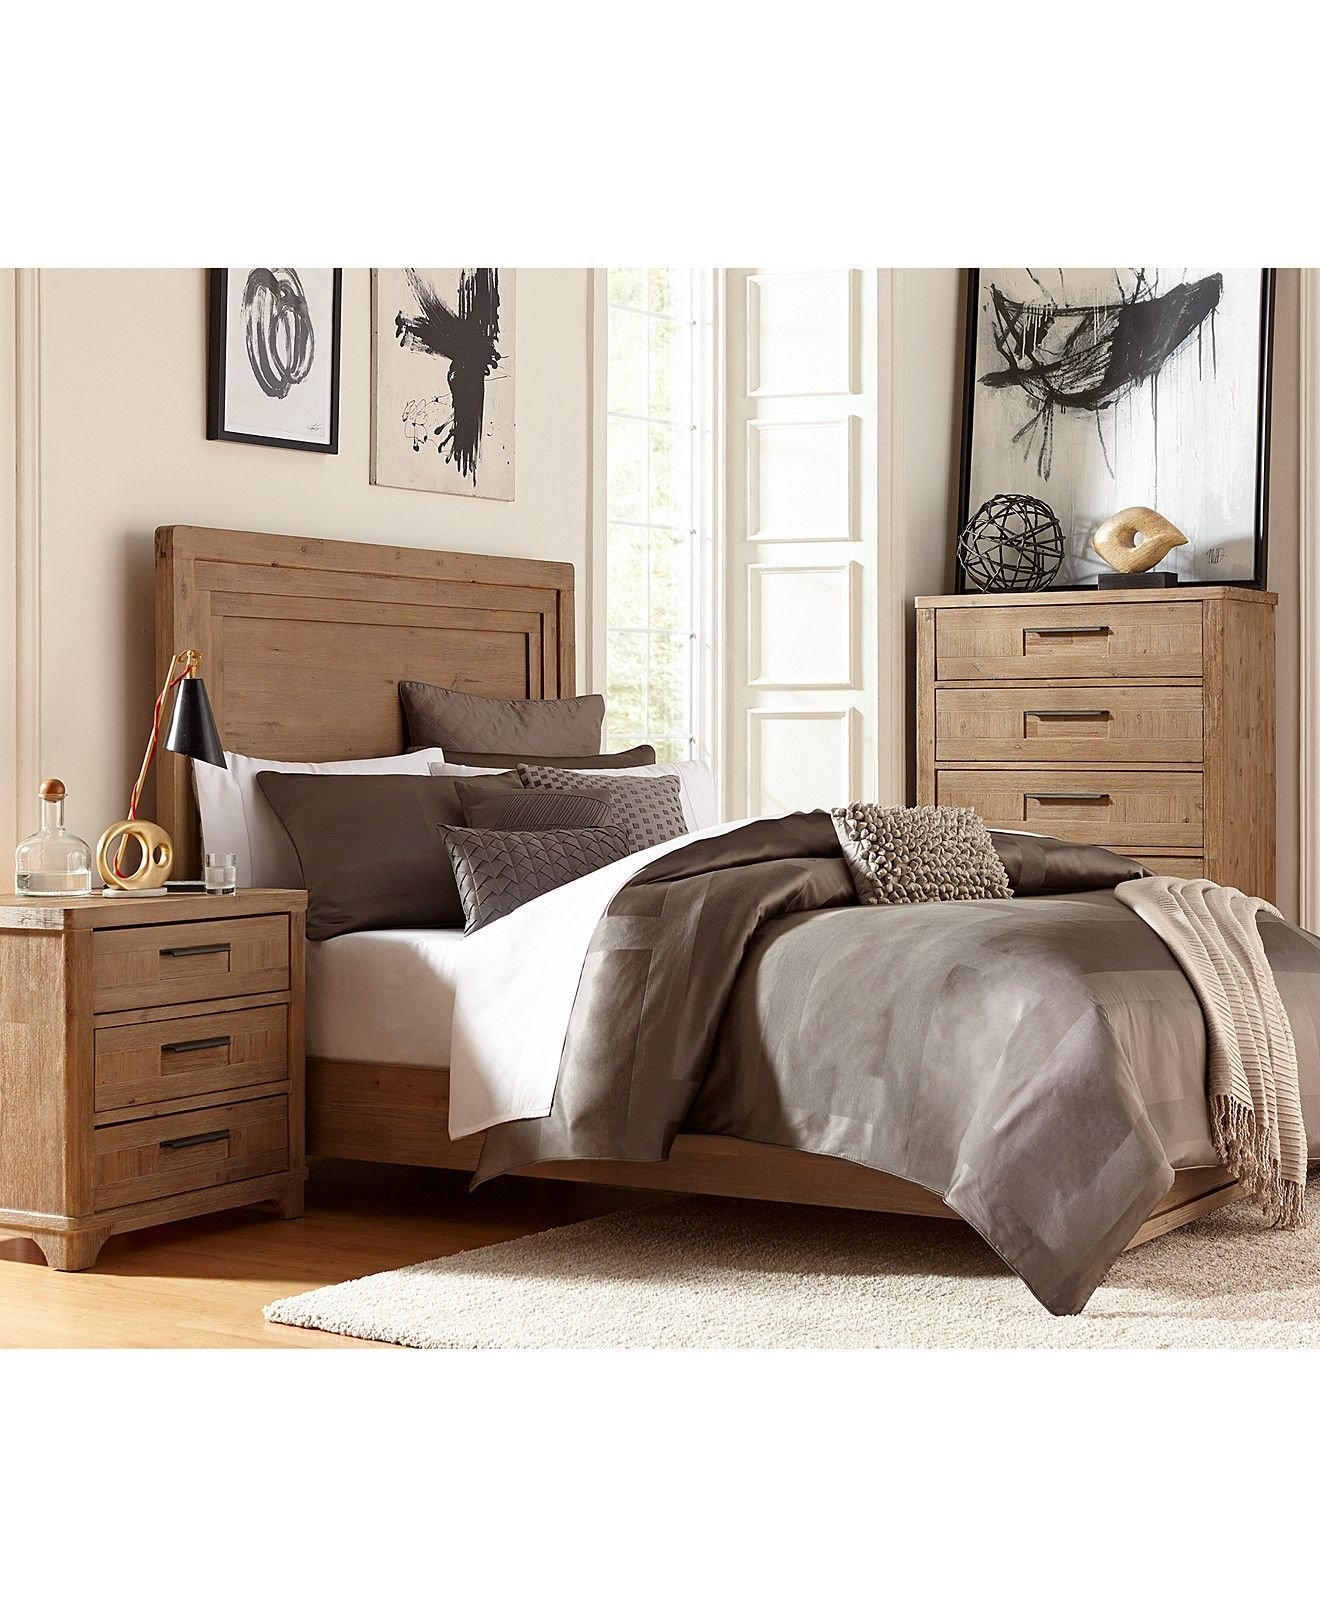 Best Summerside 3 Piece Queen Bedroom Furniture Set With Chest With Pictures